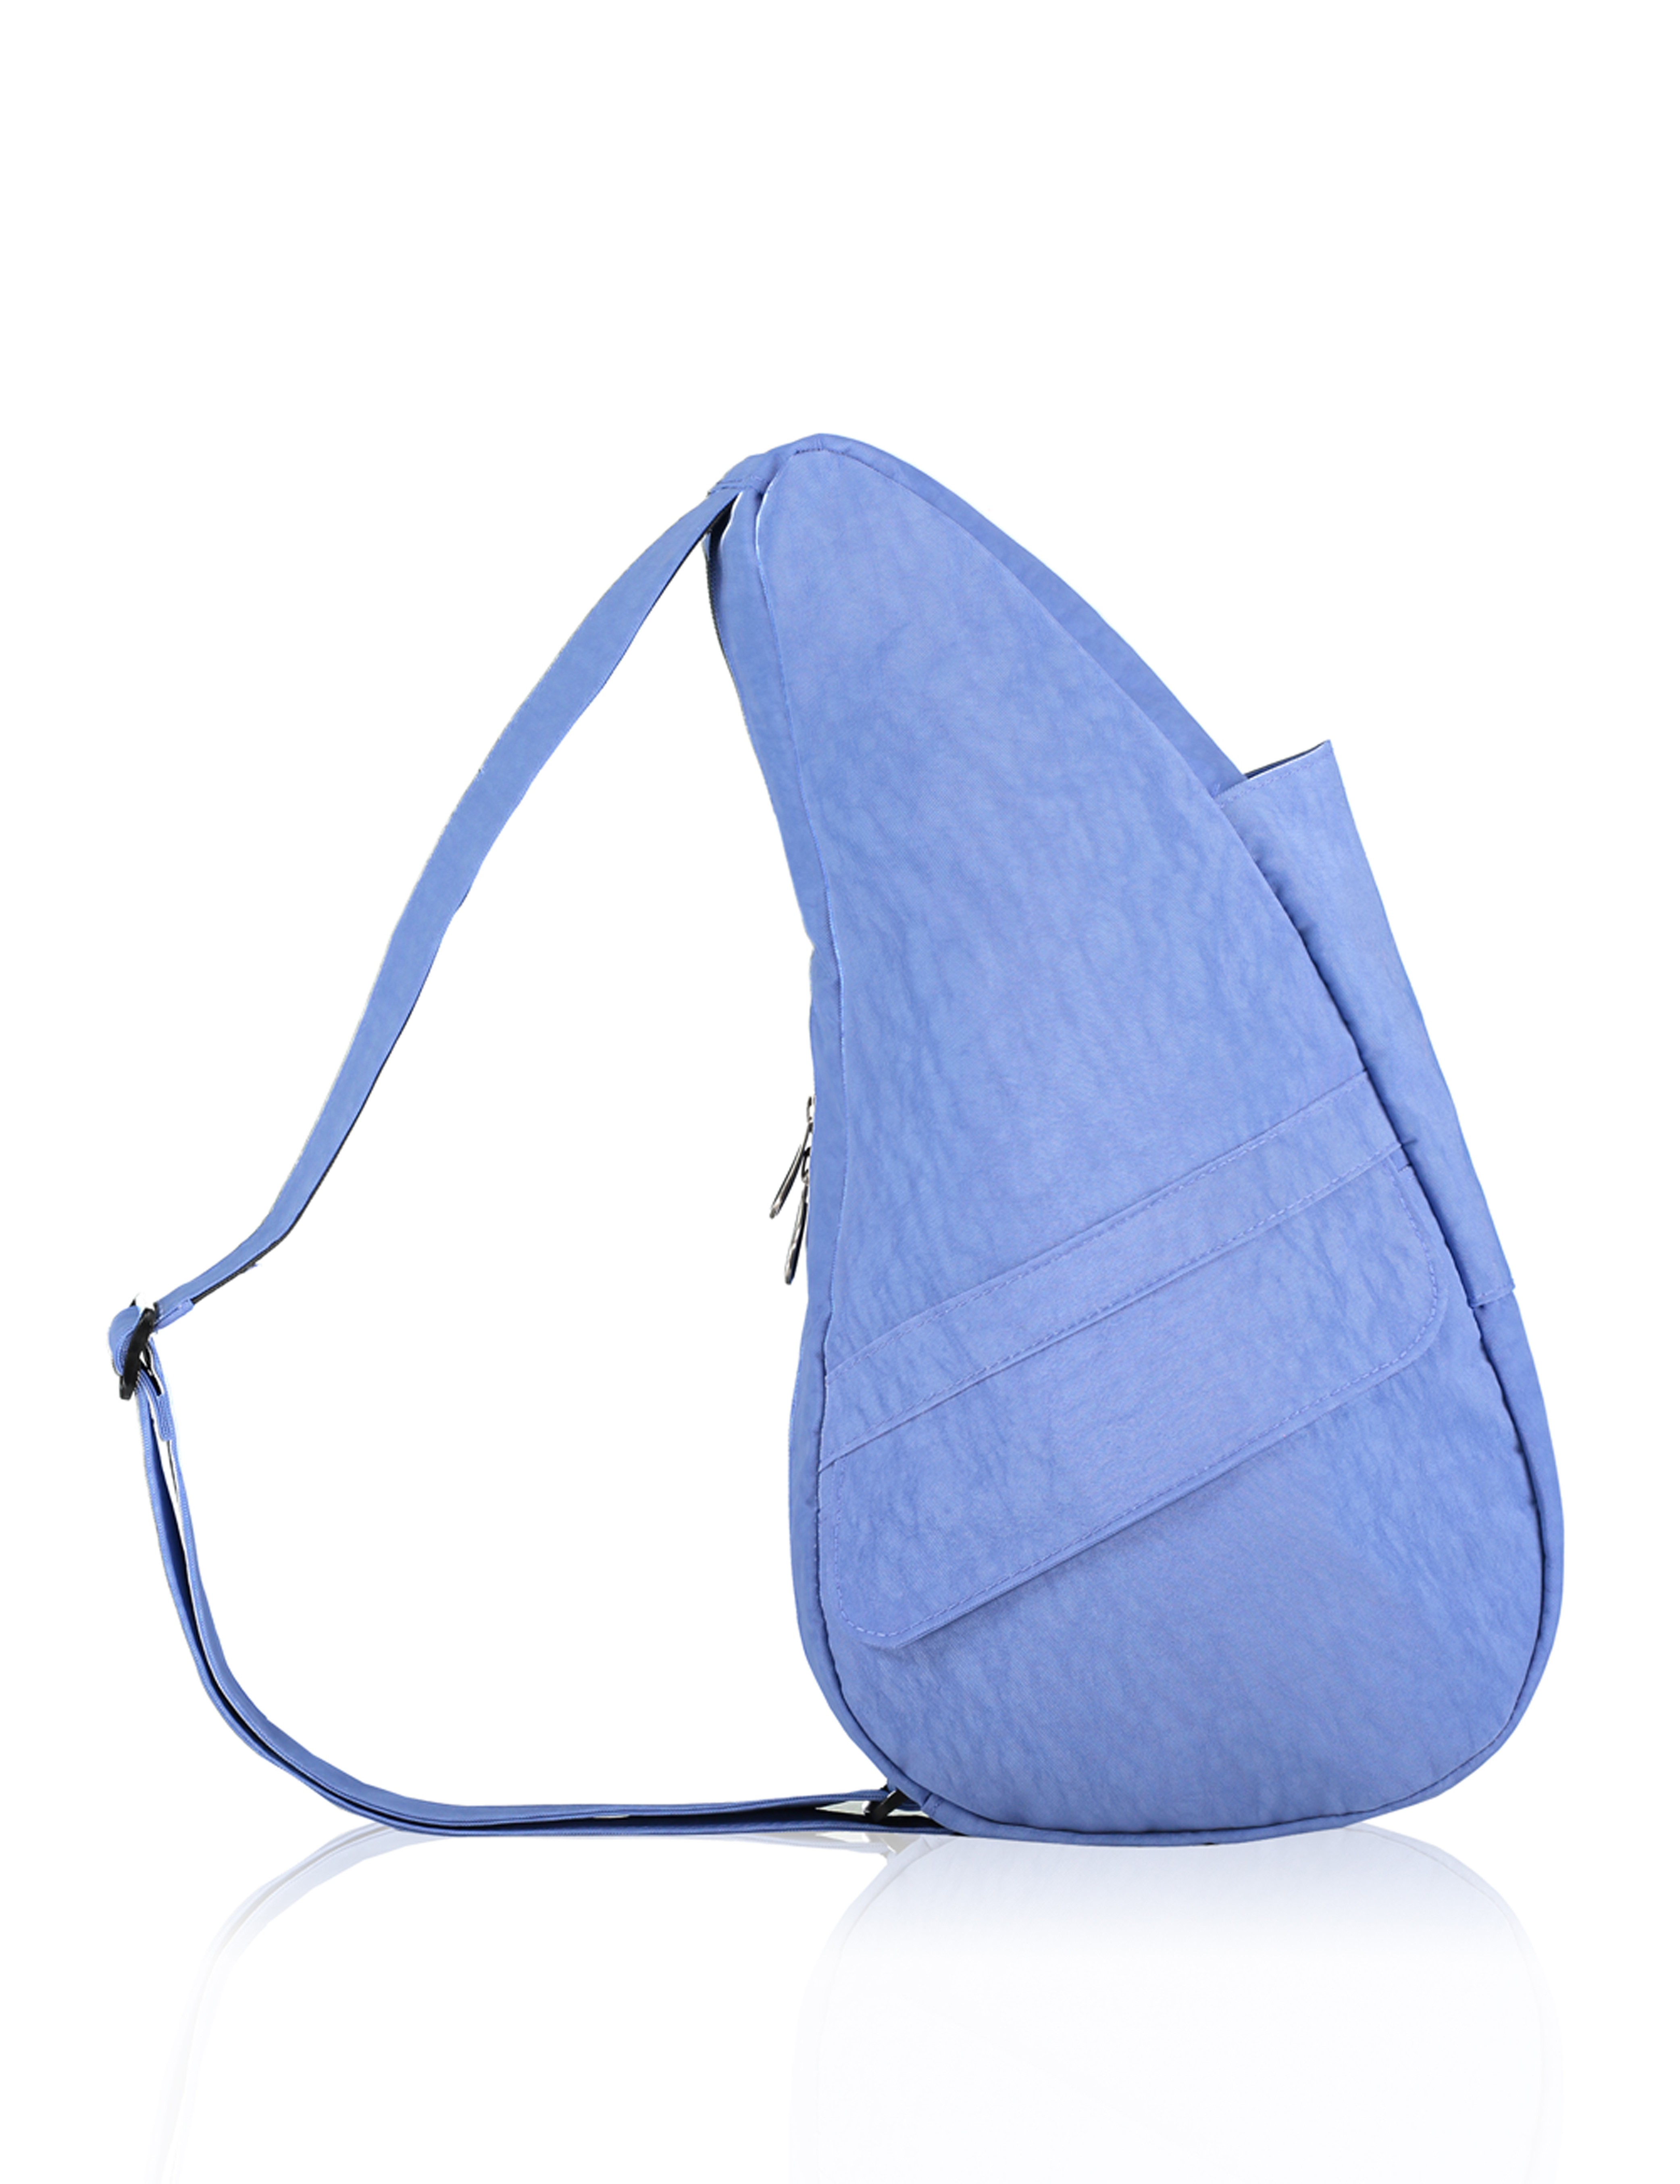 Ameribag Healthy Back Bag 6103 Pw Small Periwinkle Blue